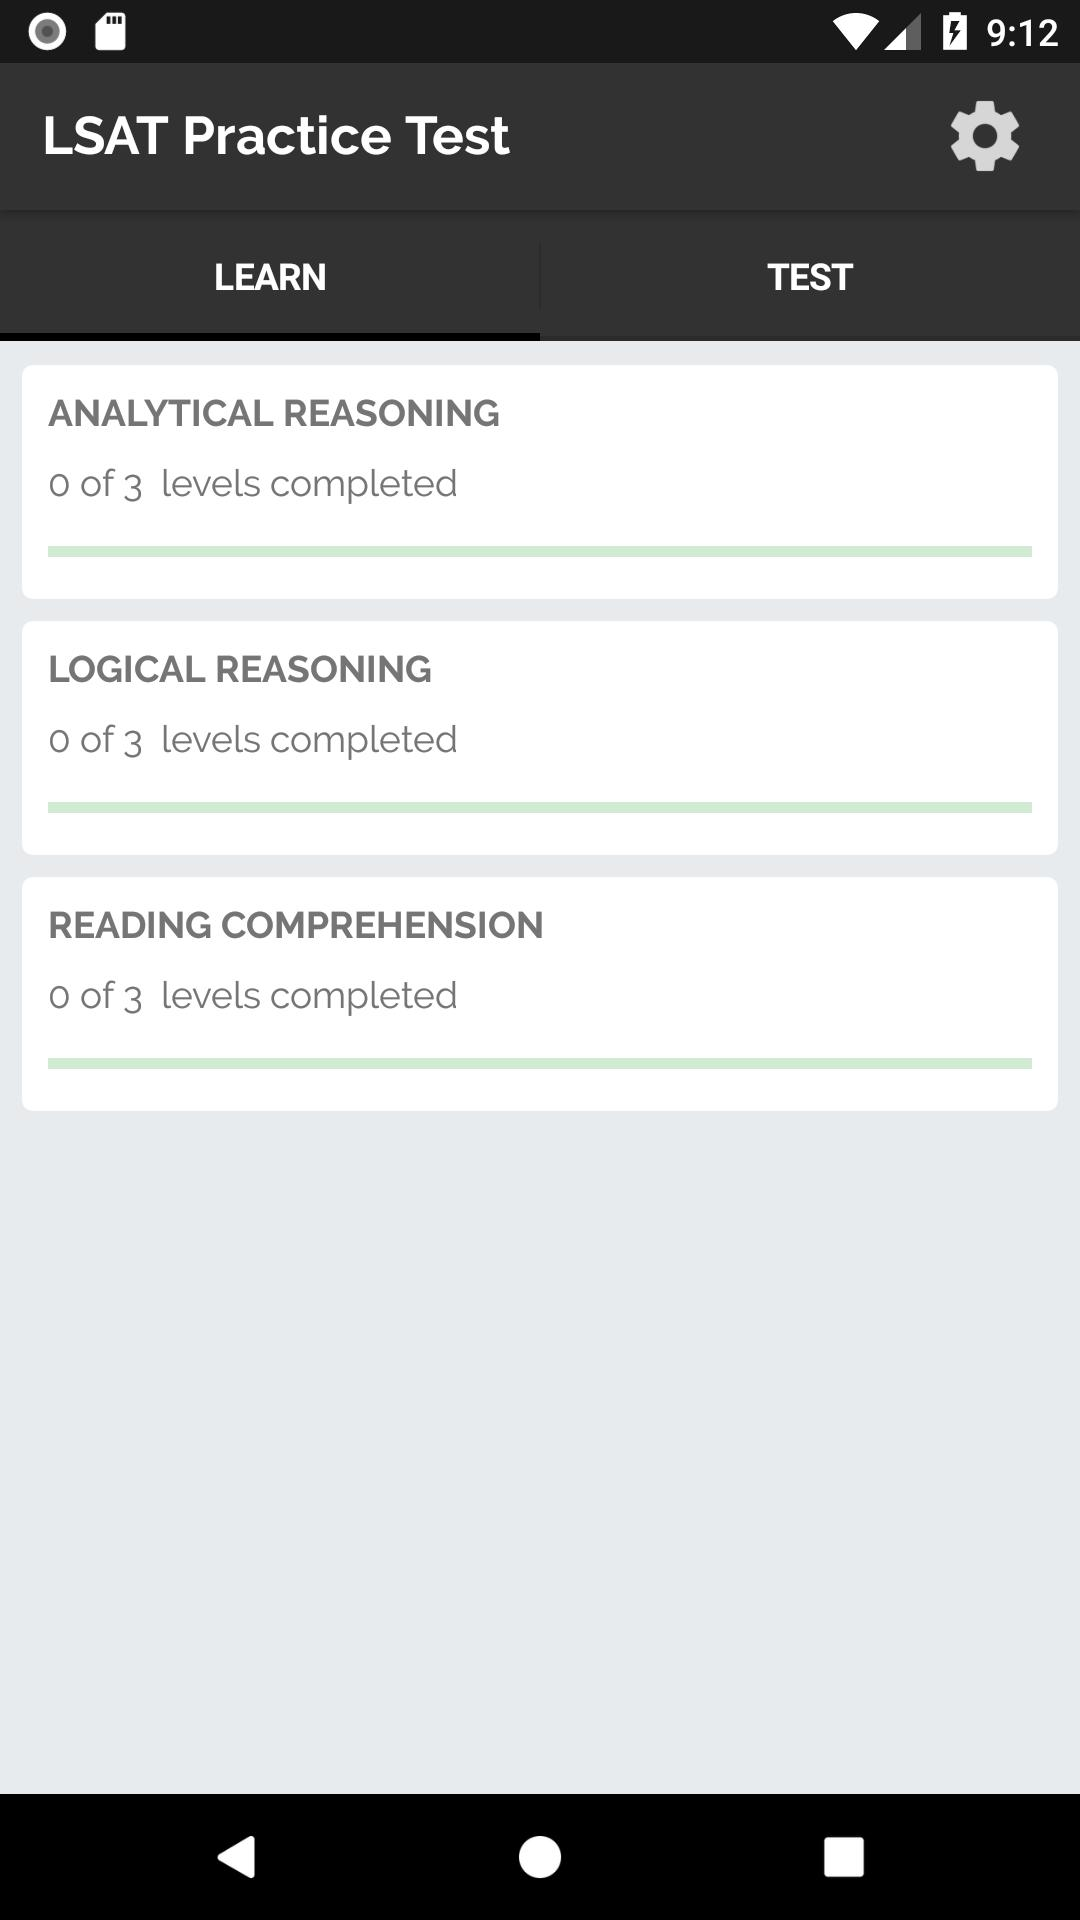 LSAT Practice Test for Android - APK Download